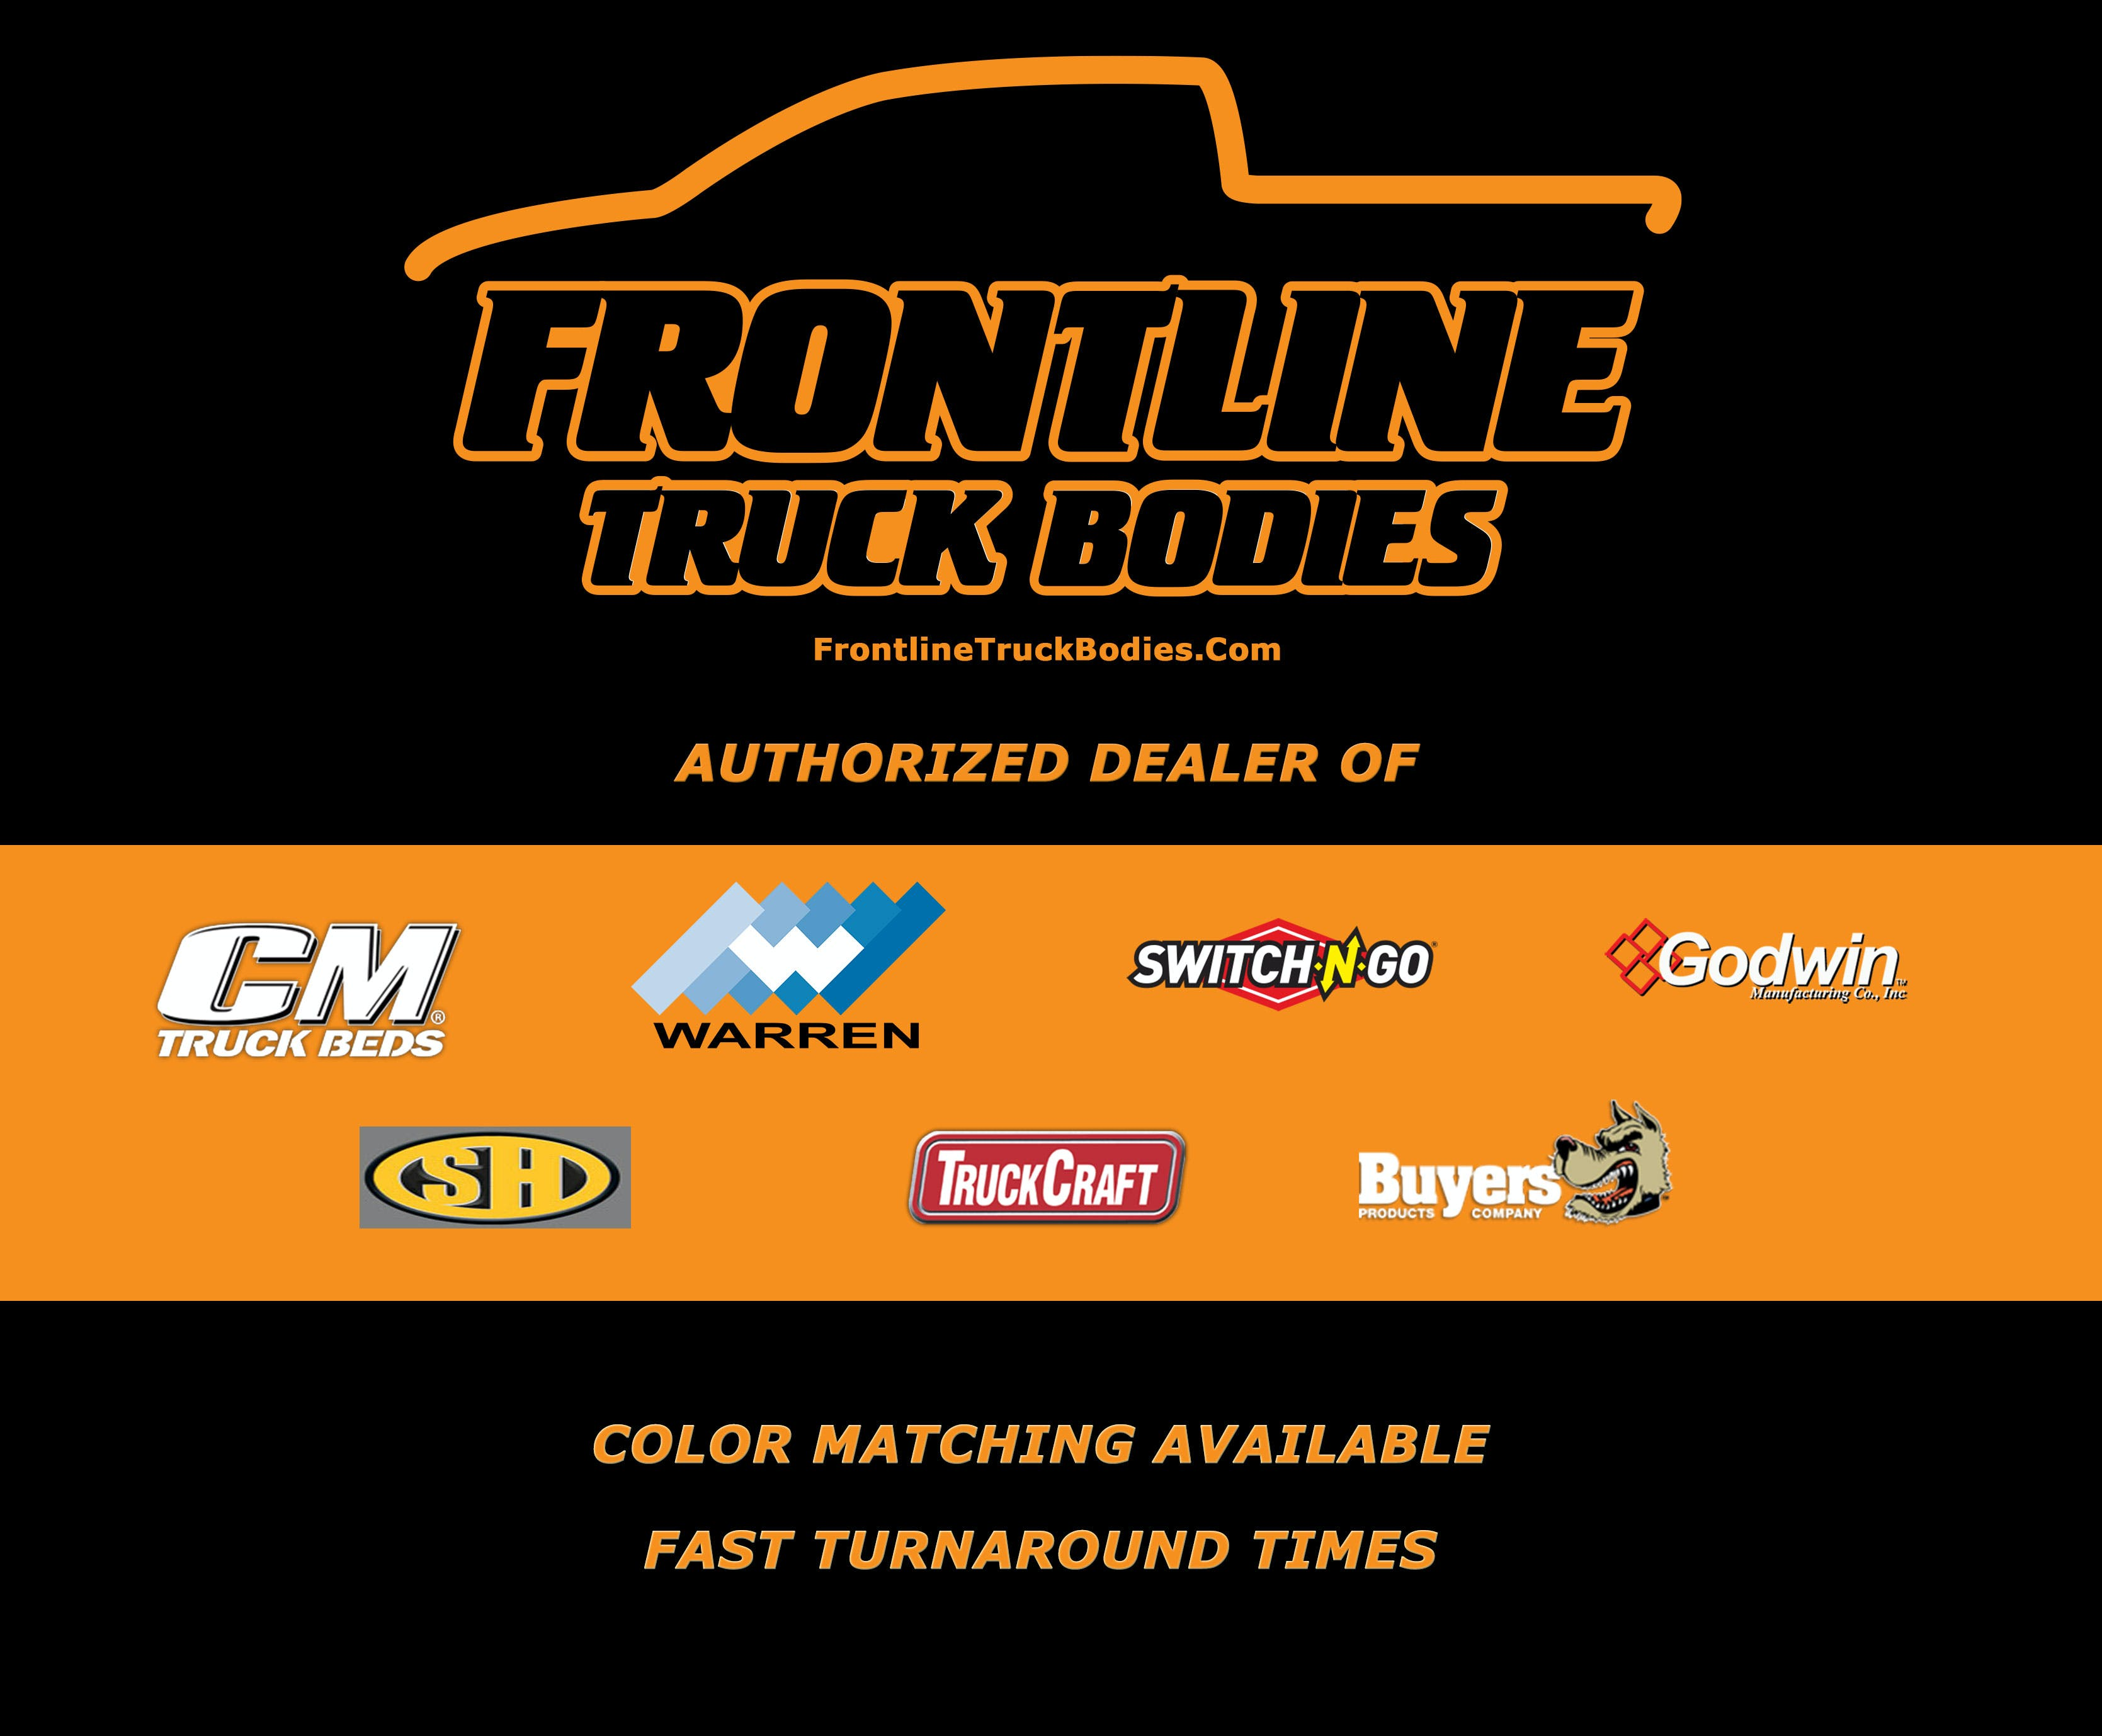 frontline truck bodies for sale